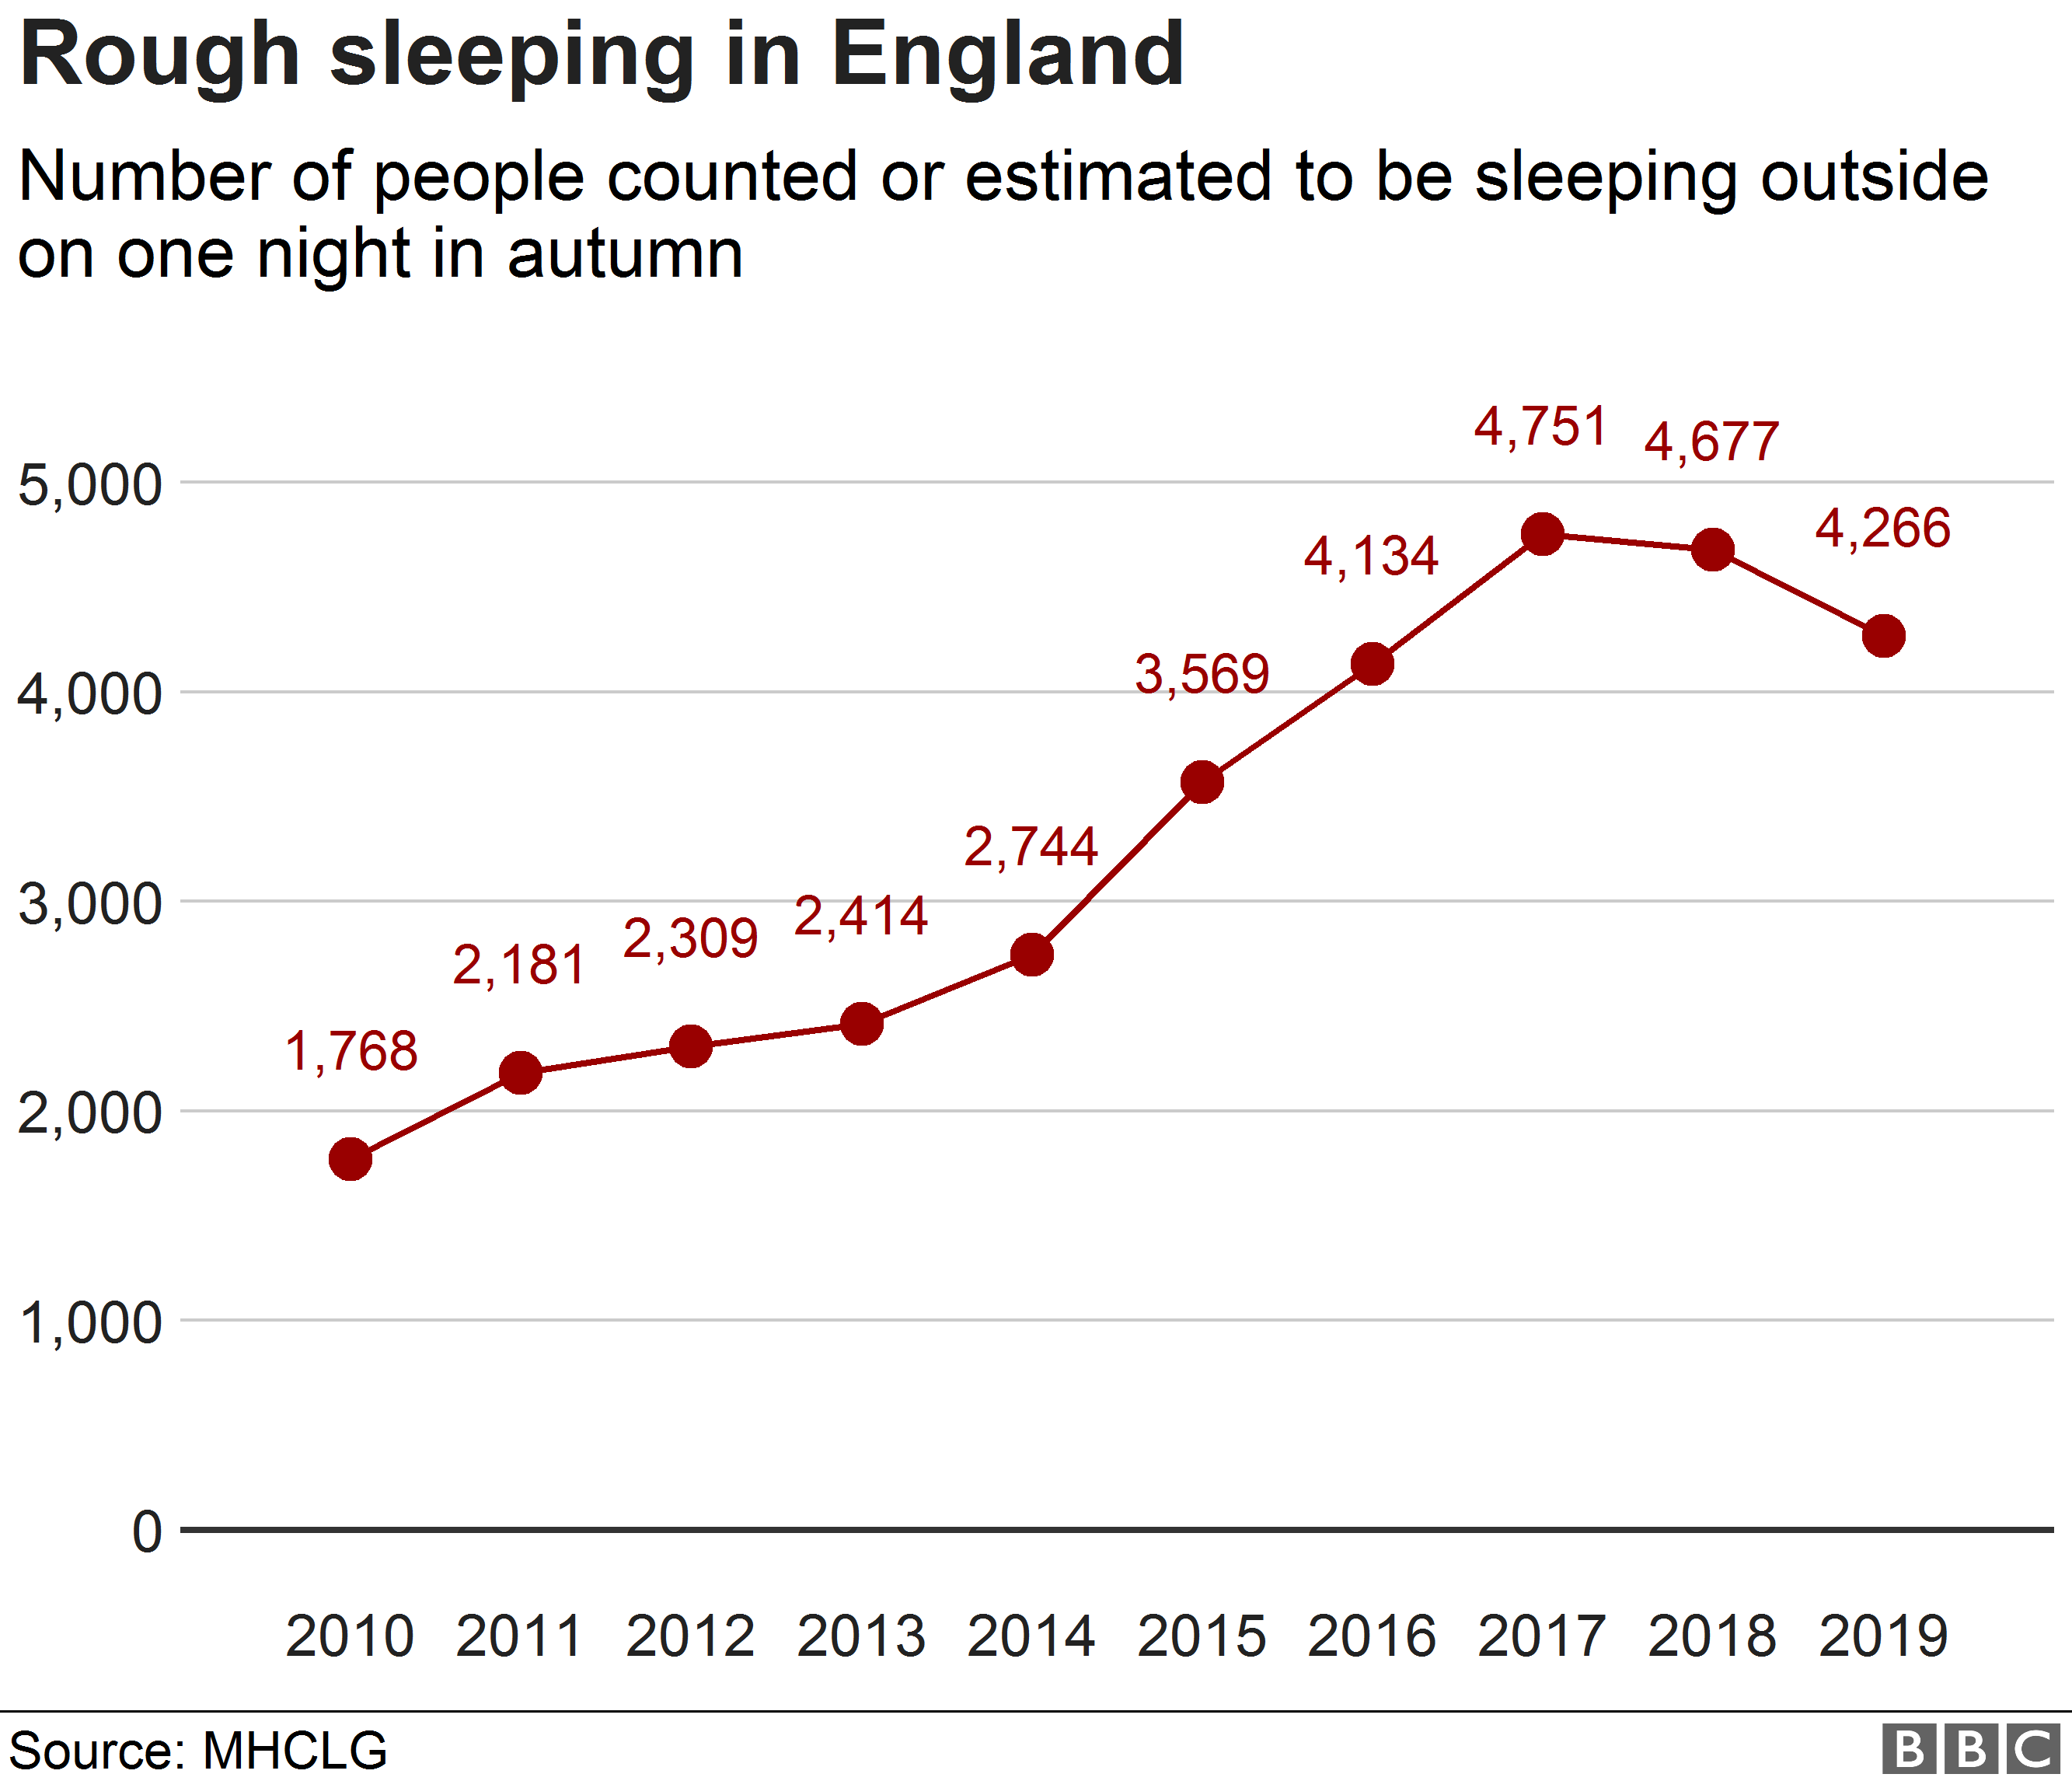 Chart showing numbers of rough sleepers counted on a single night each year across England